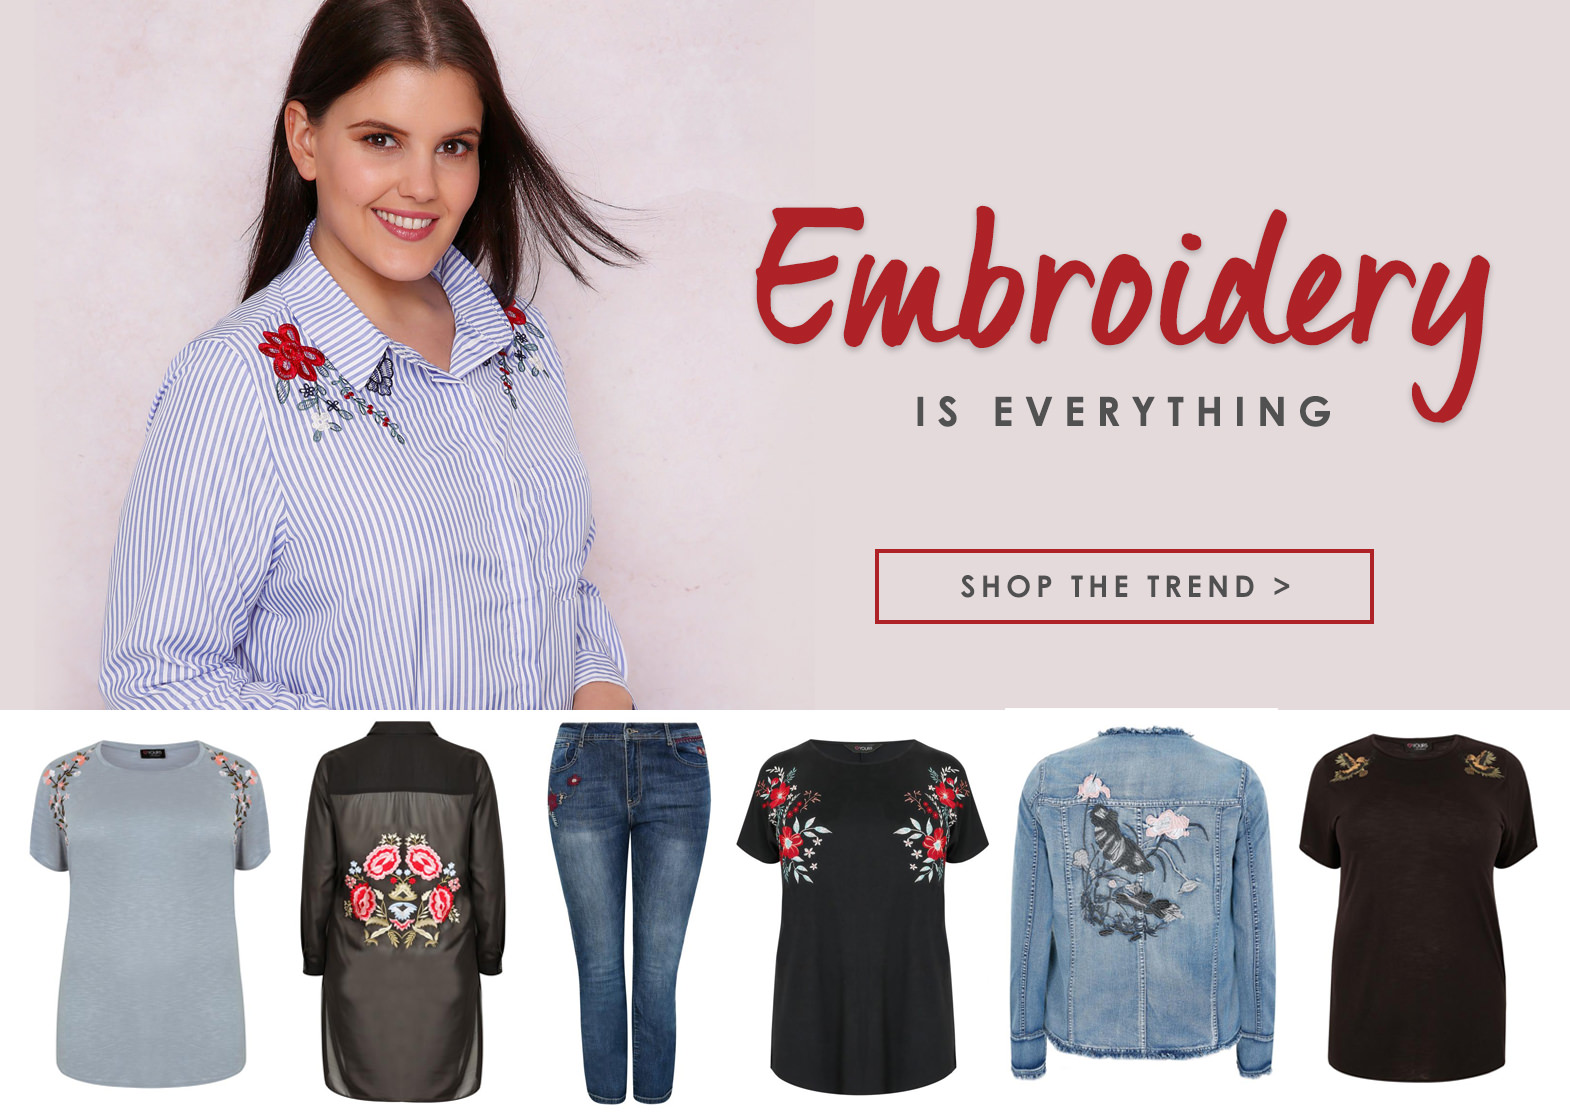 Shop Embroidery >